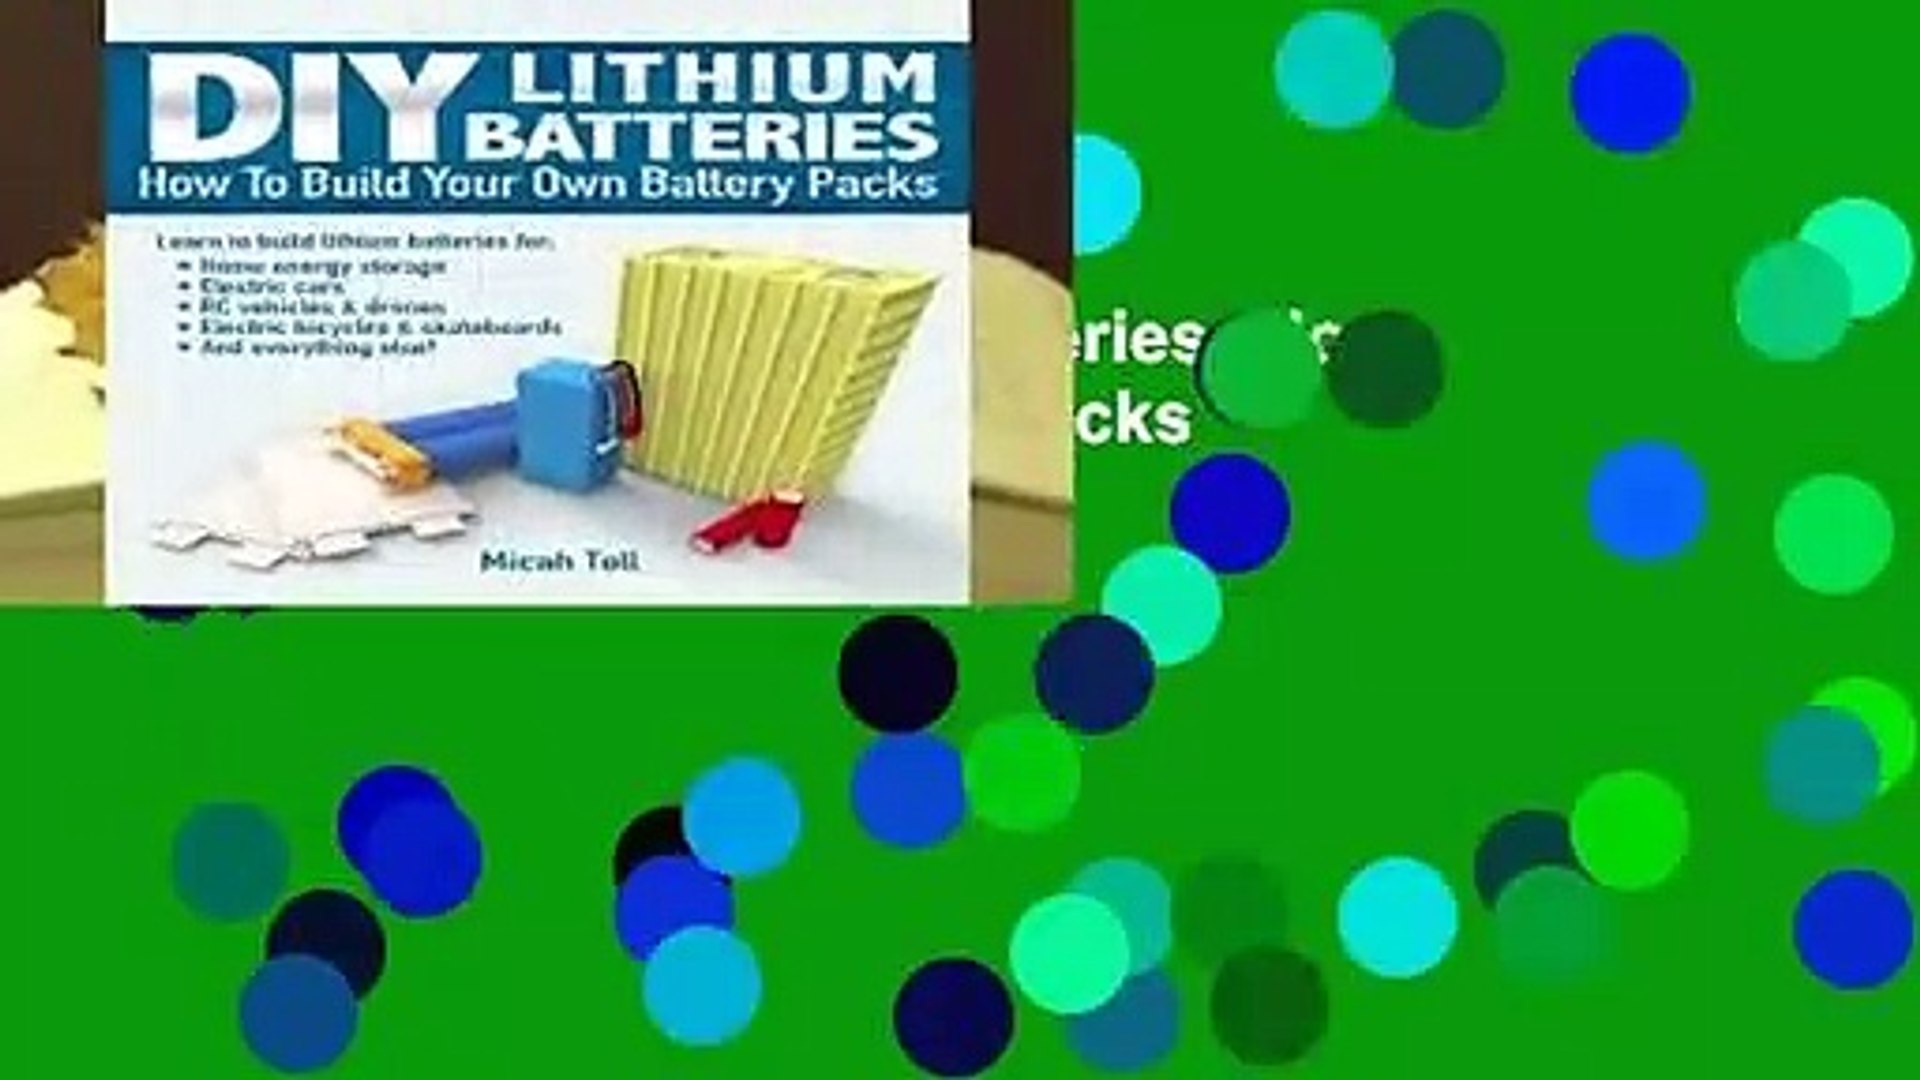 Full E-book DIY Lithium Batteries: How to Build Your Own Battery Packs  For Full